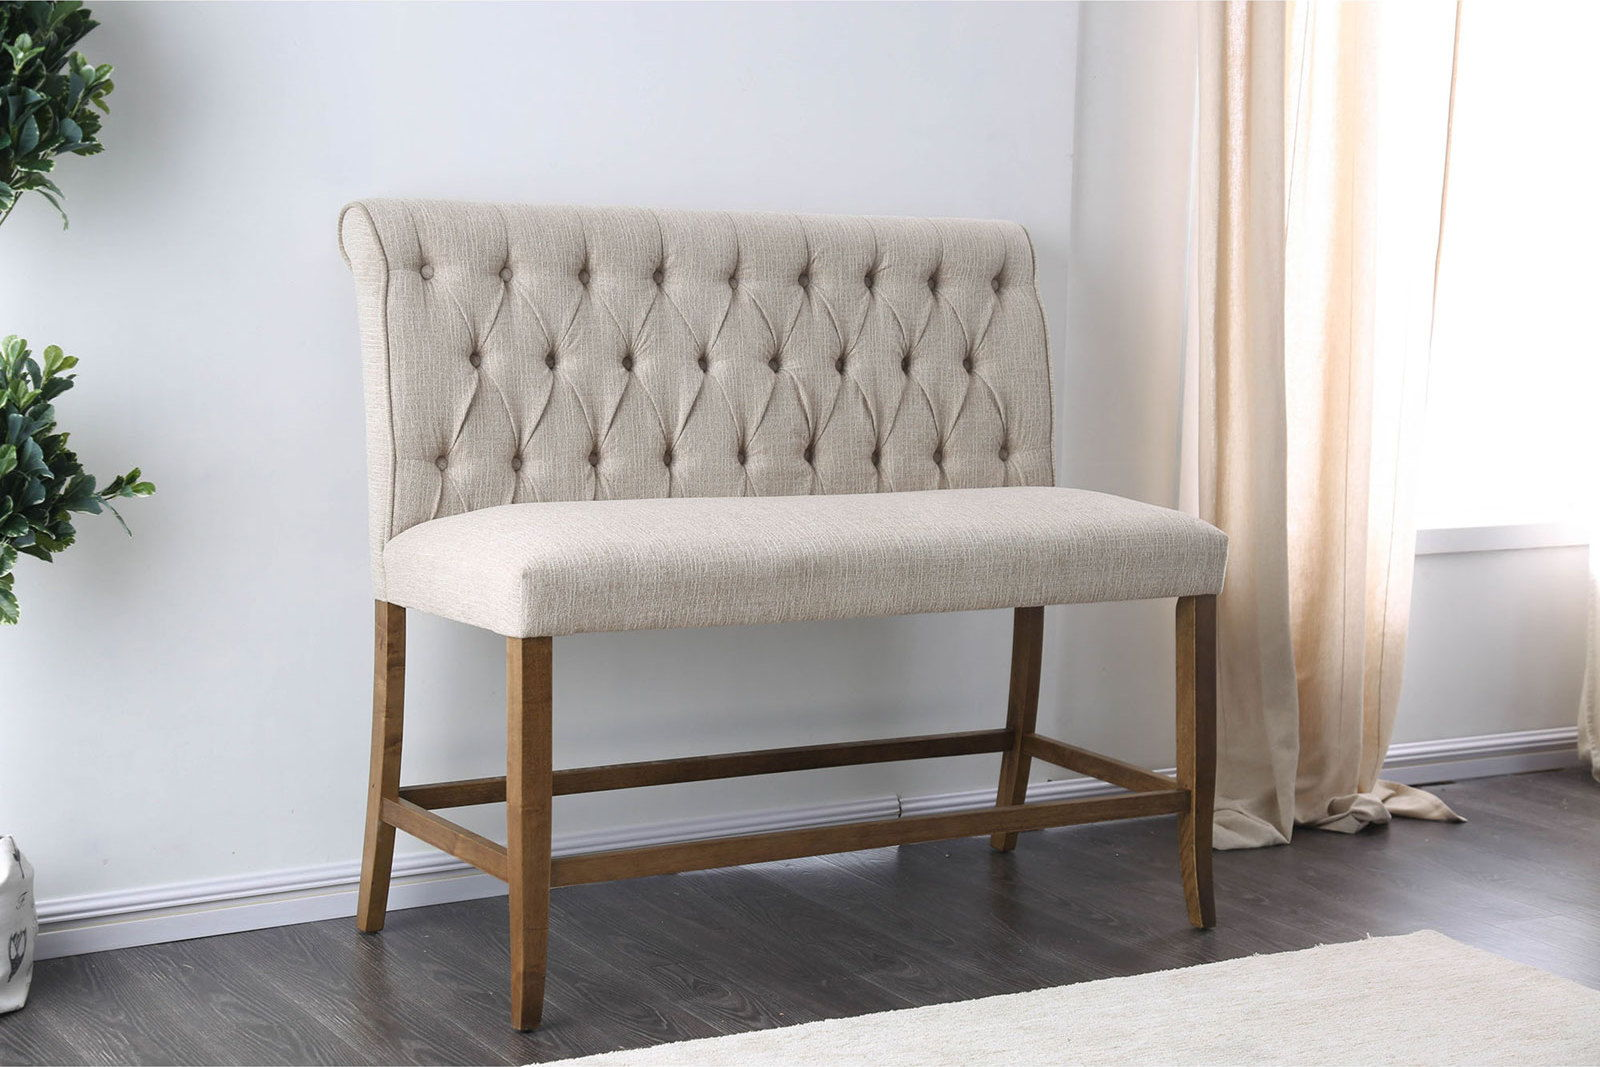 Sania - Counter Ht. Bench - Beige